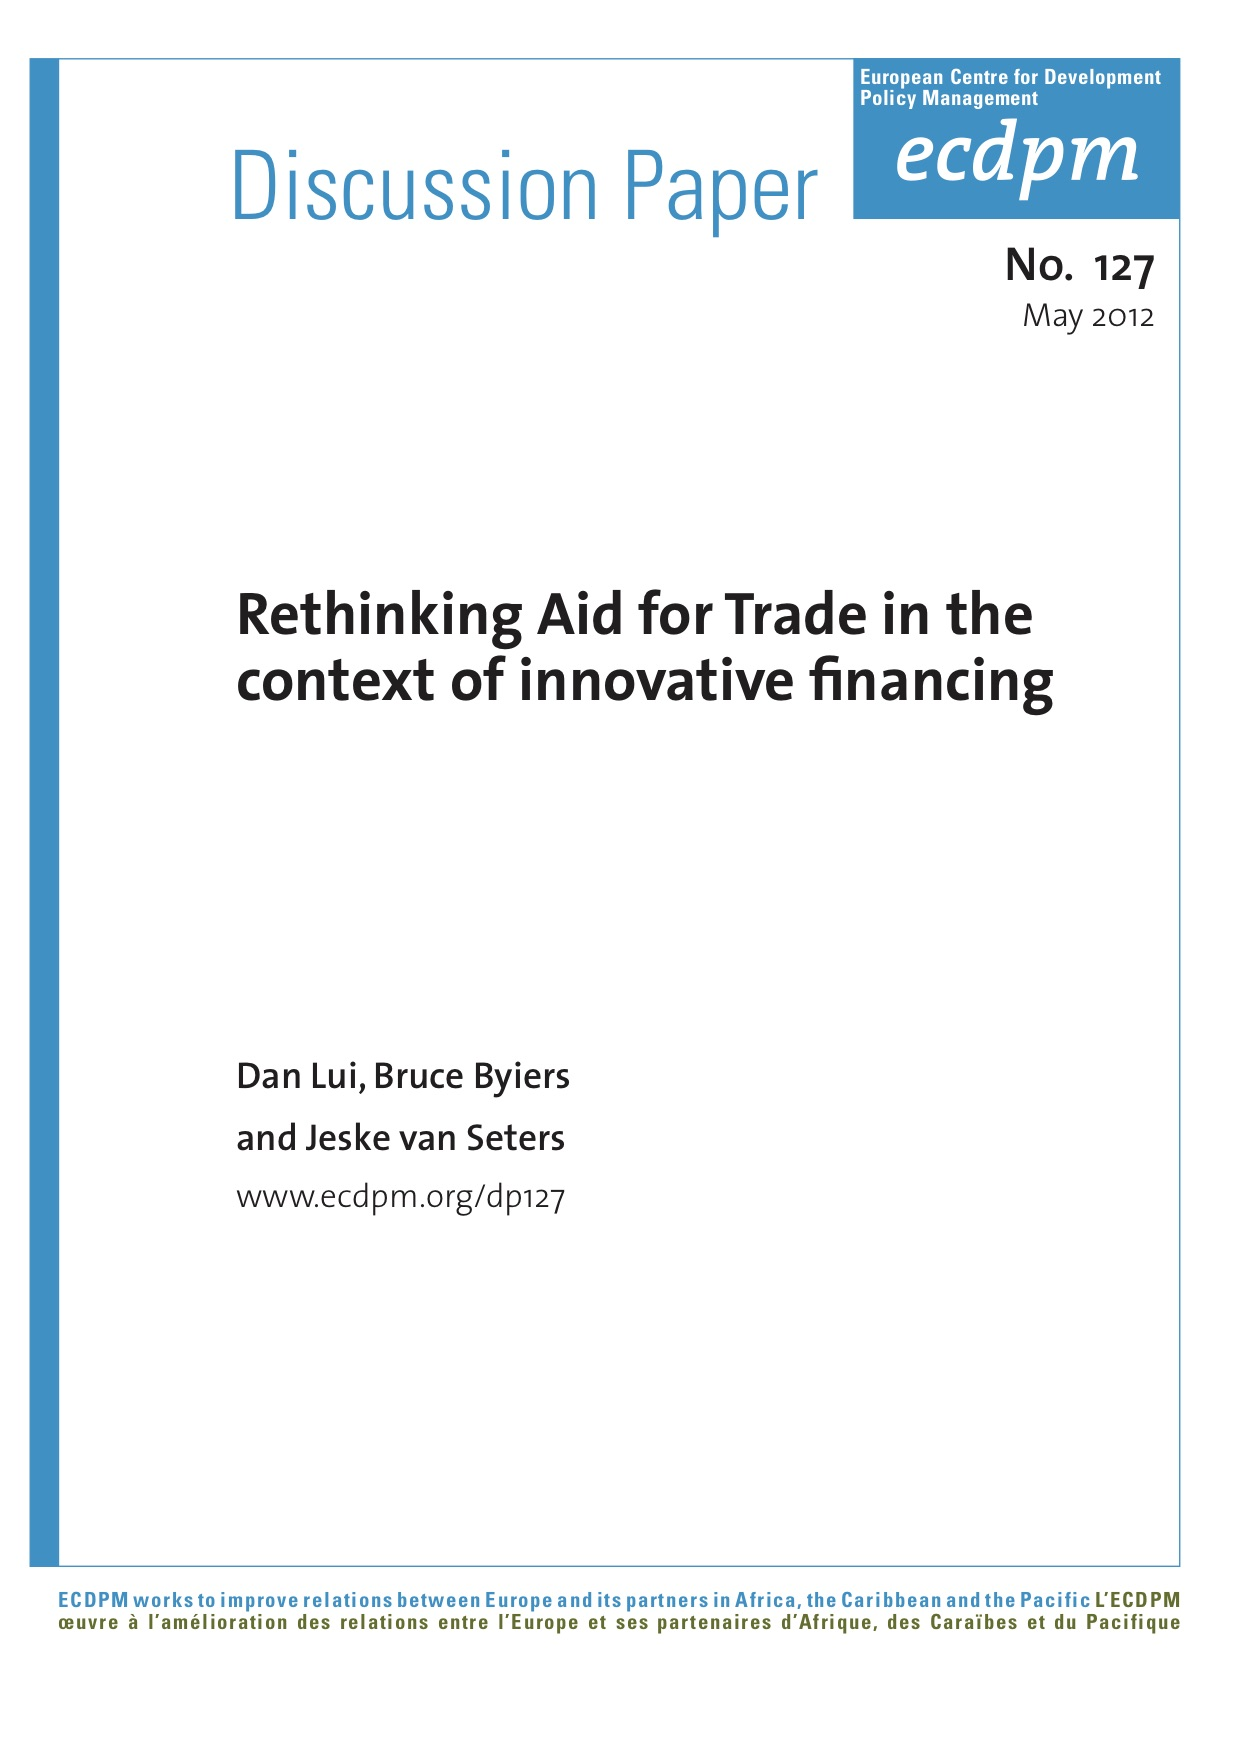 Rethinking Aid for Trade in the Context of Innovative Financing